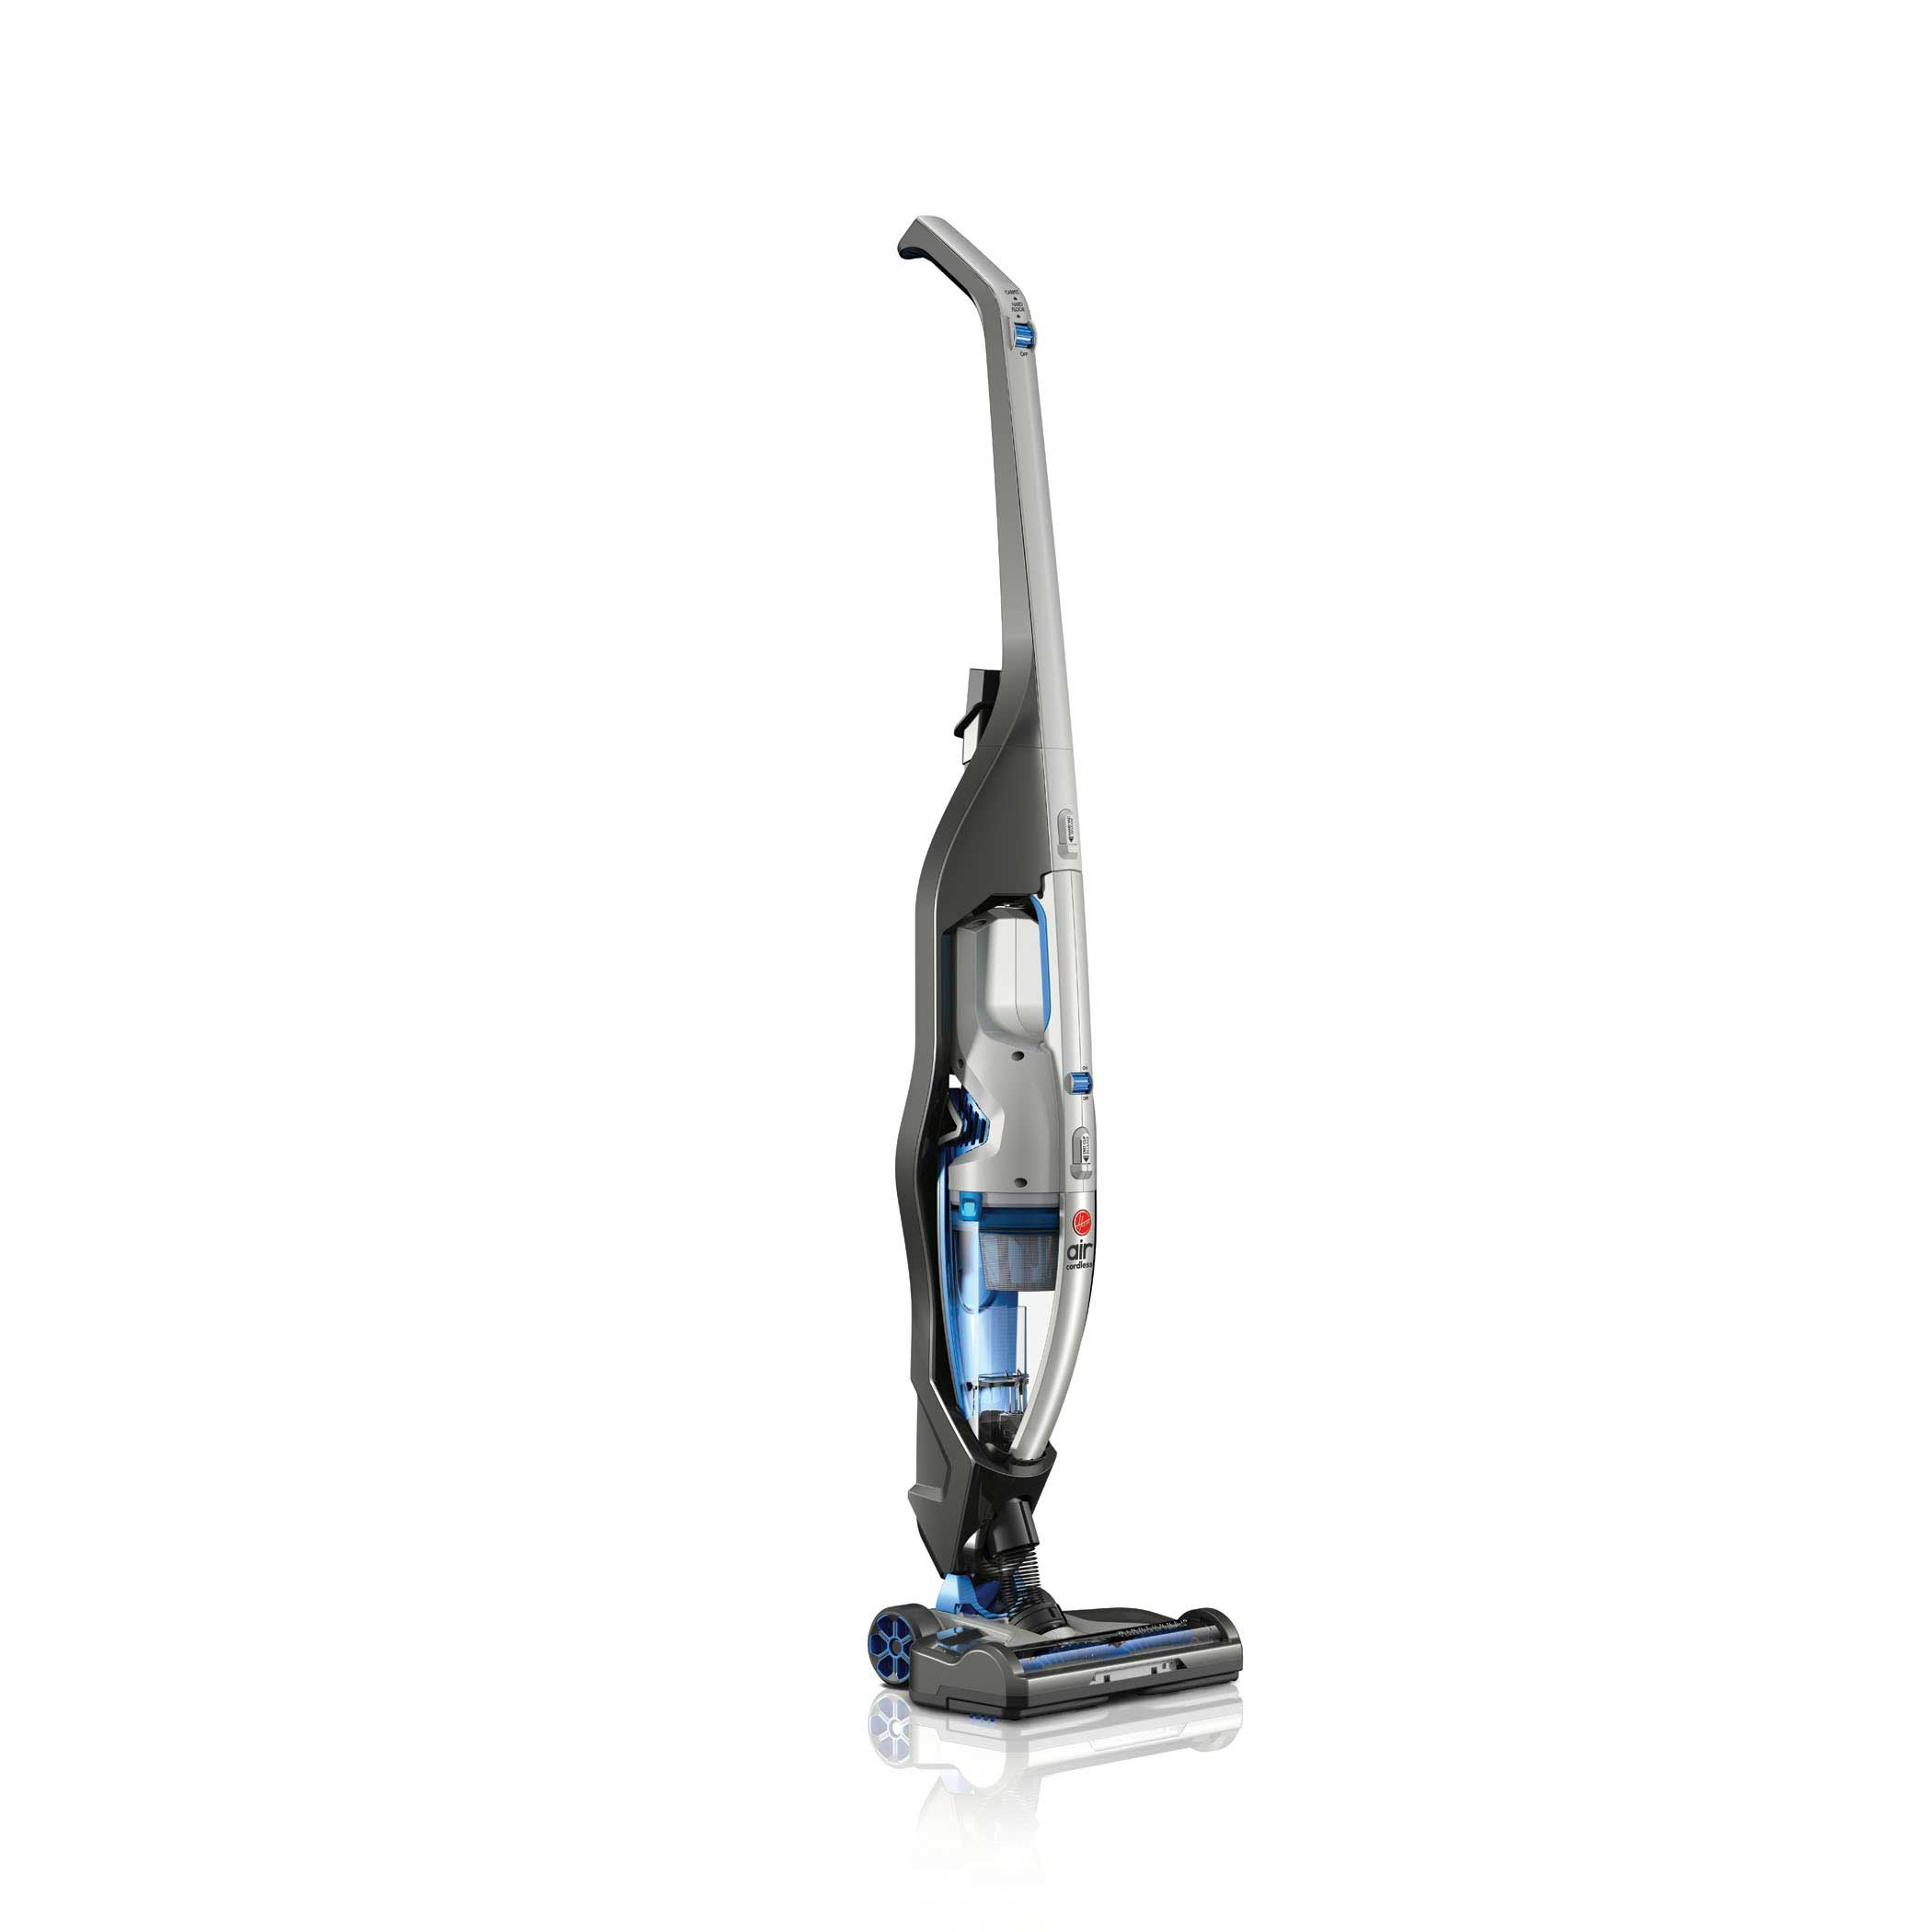 Hoover Releases 1st Cordless Cleaning Line With Unique Interchangeable Battery System